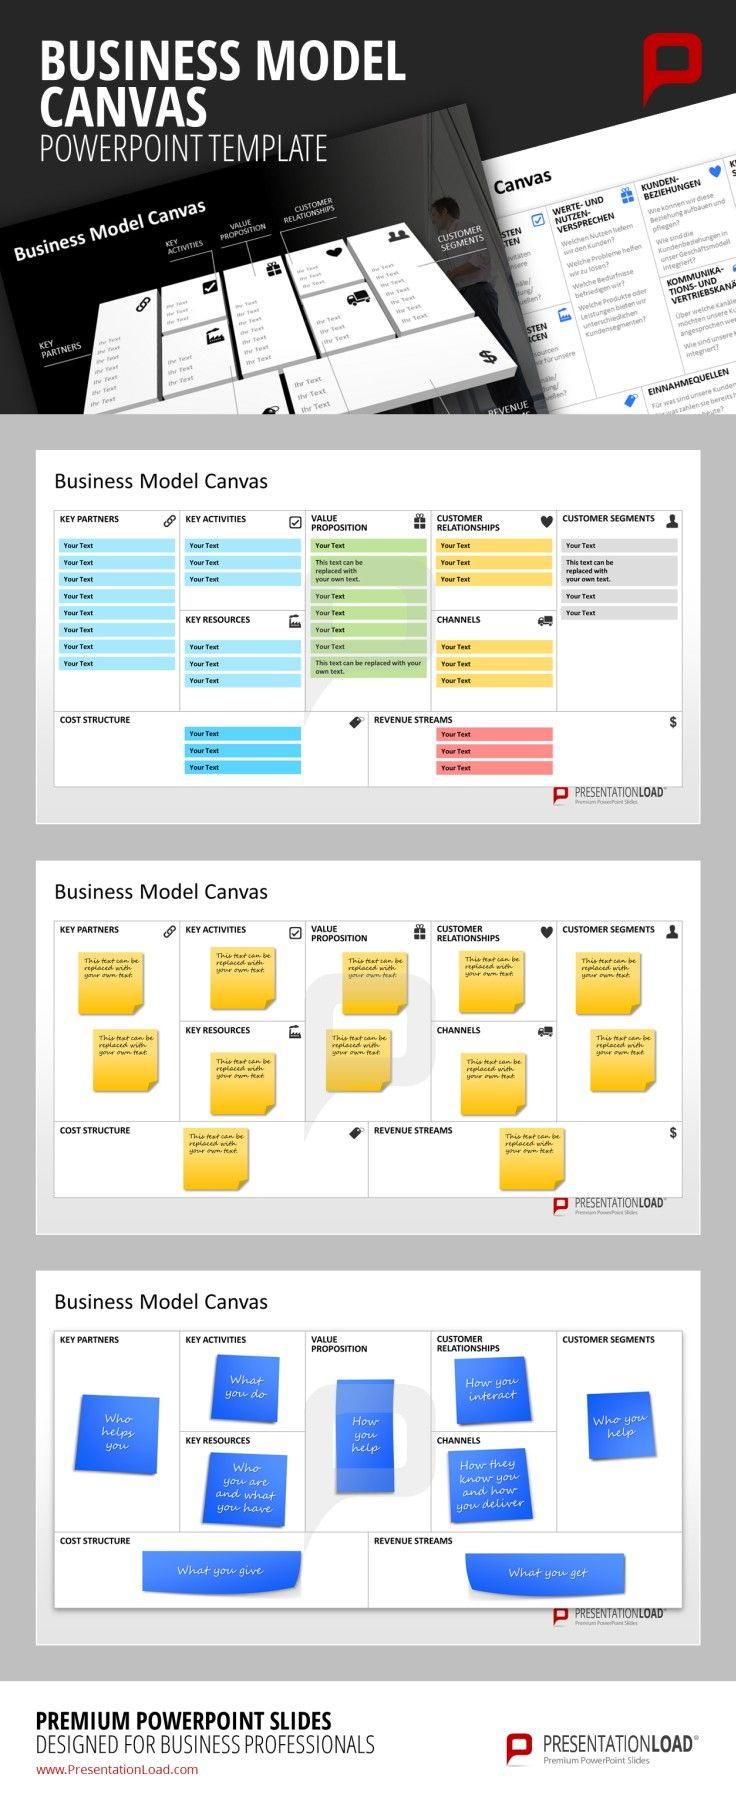 37 best business model canvas powerpoint templates images on business model canvas powerpoint template strategically plan and present your business model with the business model canvas template set for powerpoint toneelgroepblik Image collections